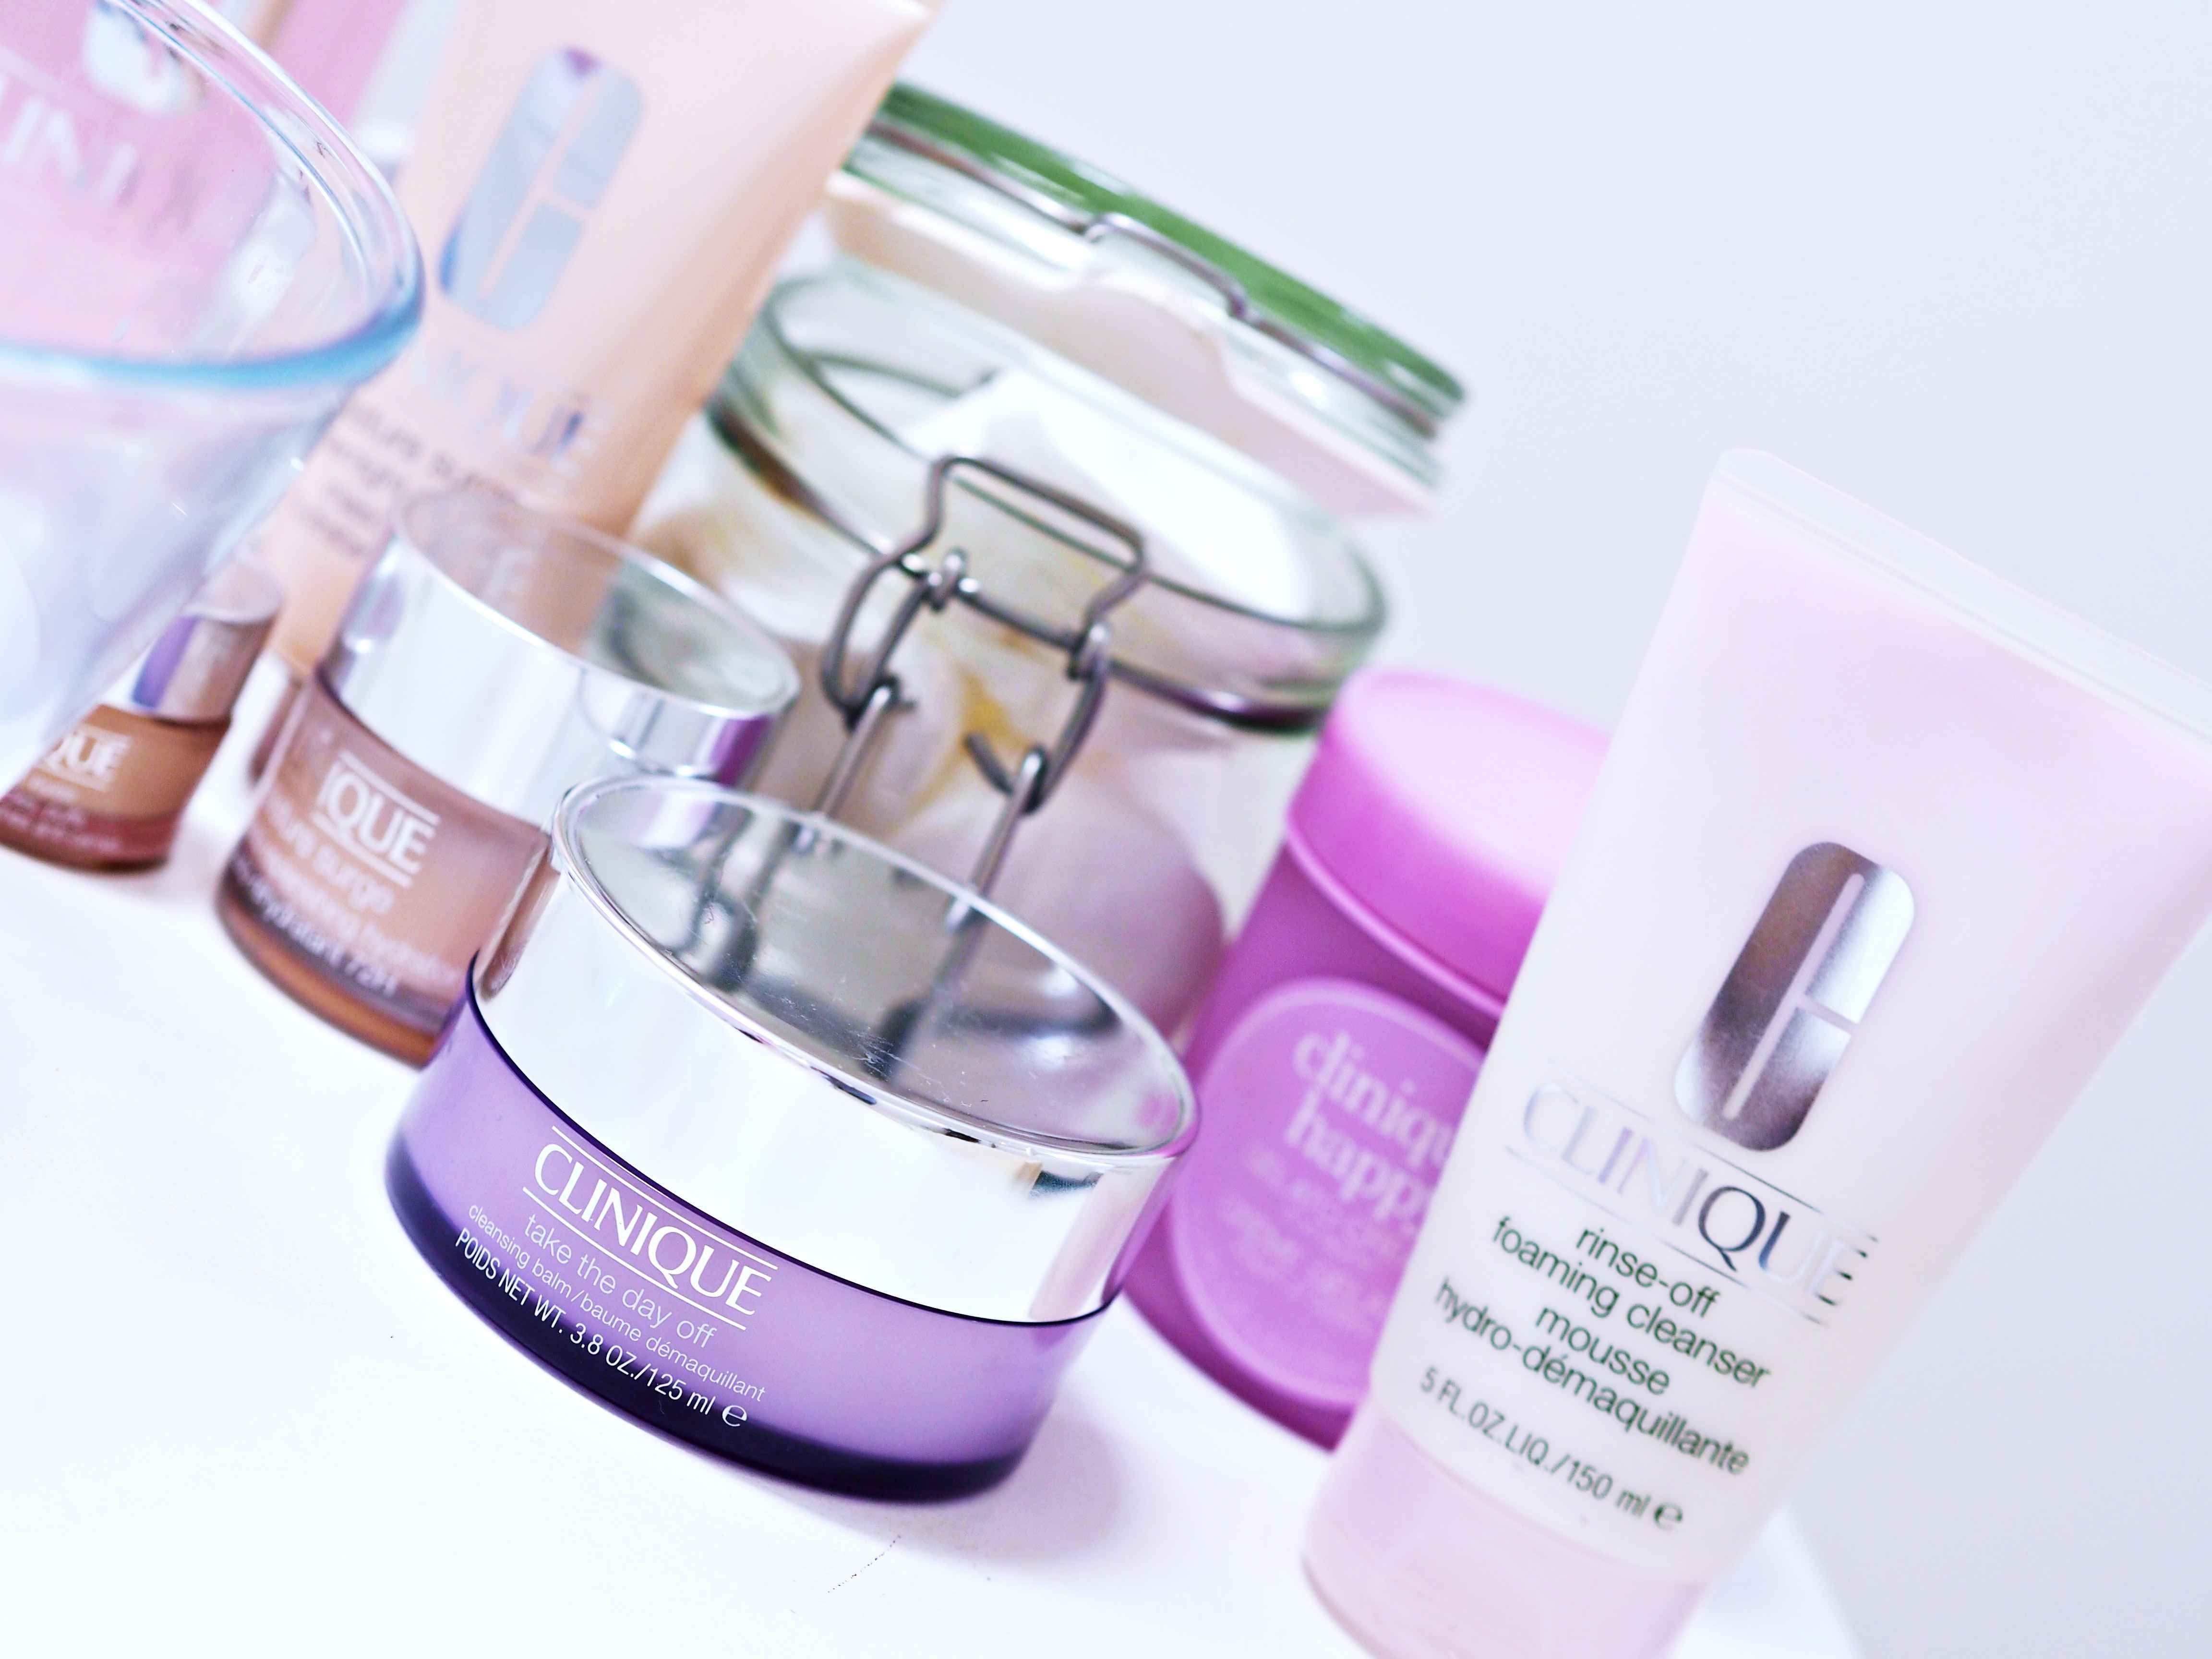 Clinique, it's as easy as 1, 2, 3! Skin care, The balm